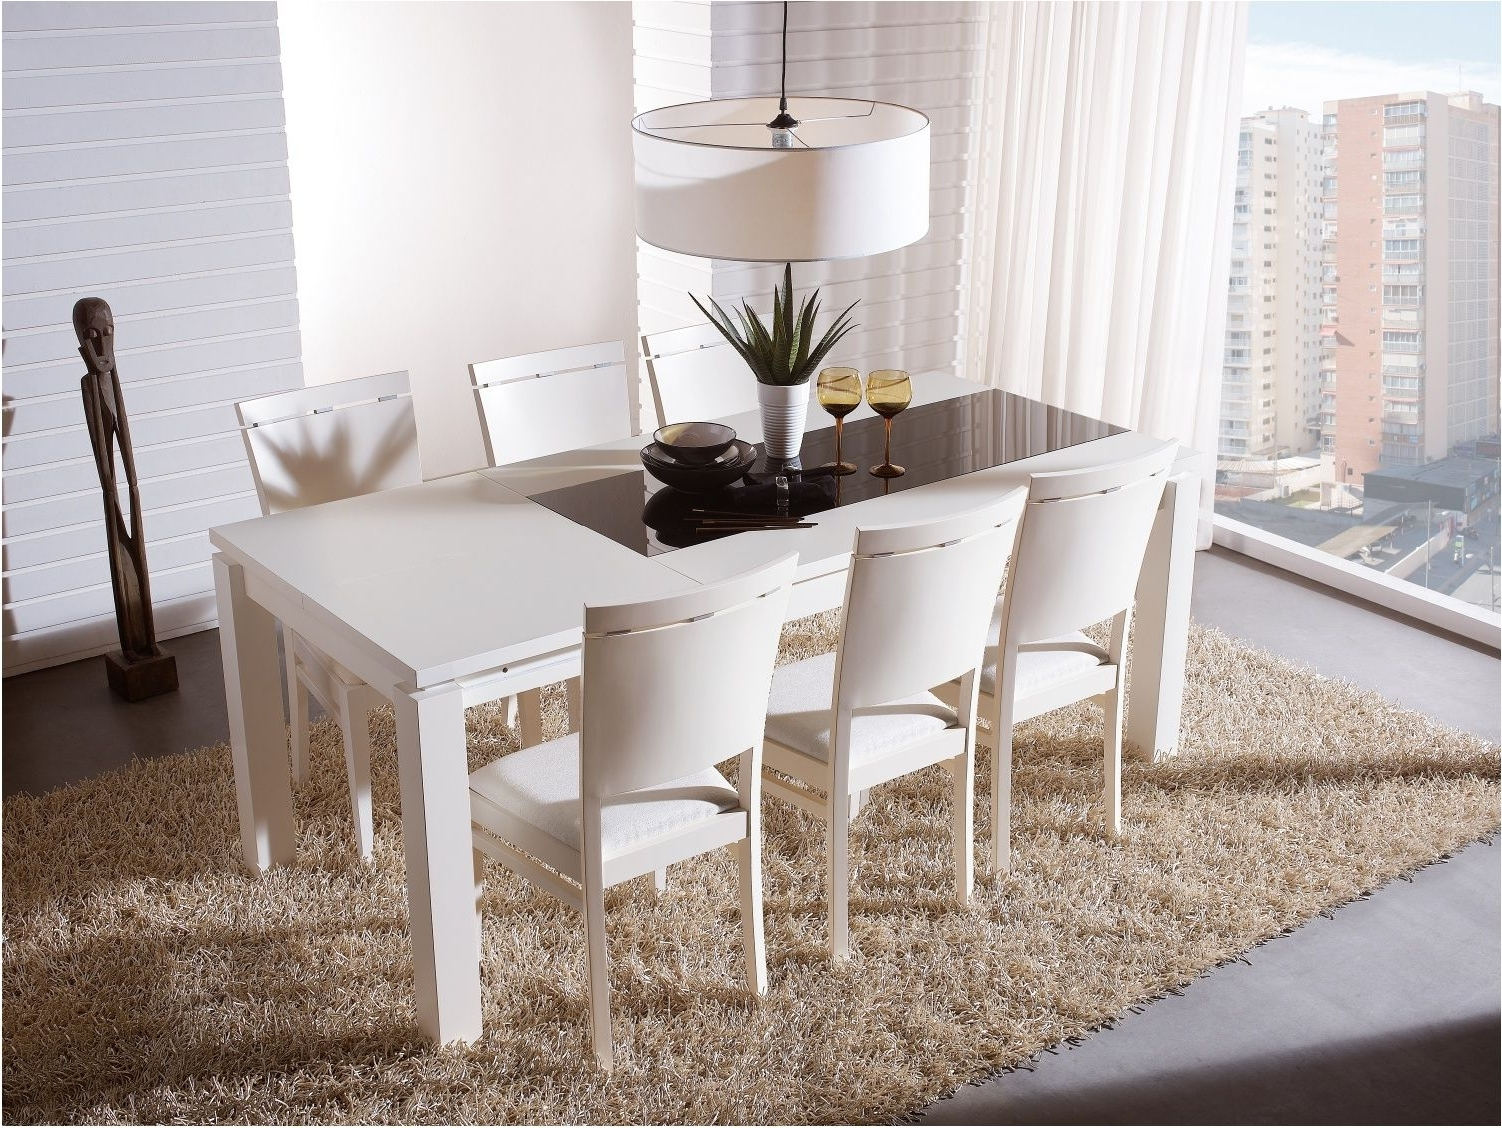 Awesome New White Extending Dining Table And Chairs Impressive With Best And Newest White Extending Dining Tables And Chairs (View 10 of 25)